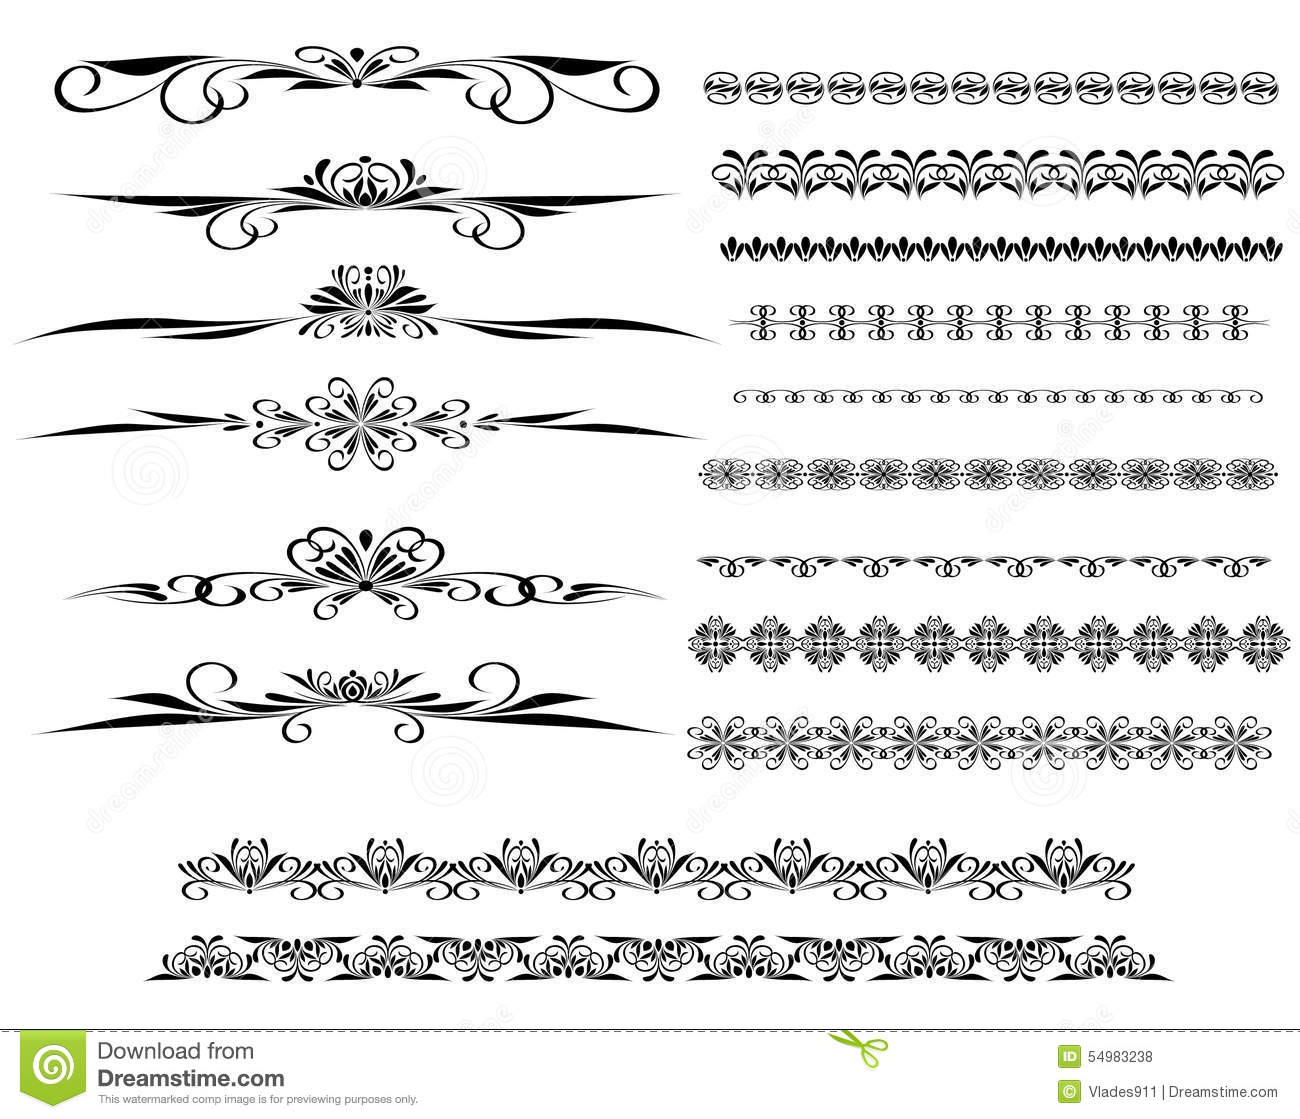 Types Of Lines In Design : Ornamental rule lines in different design stock vector